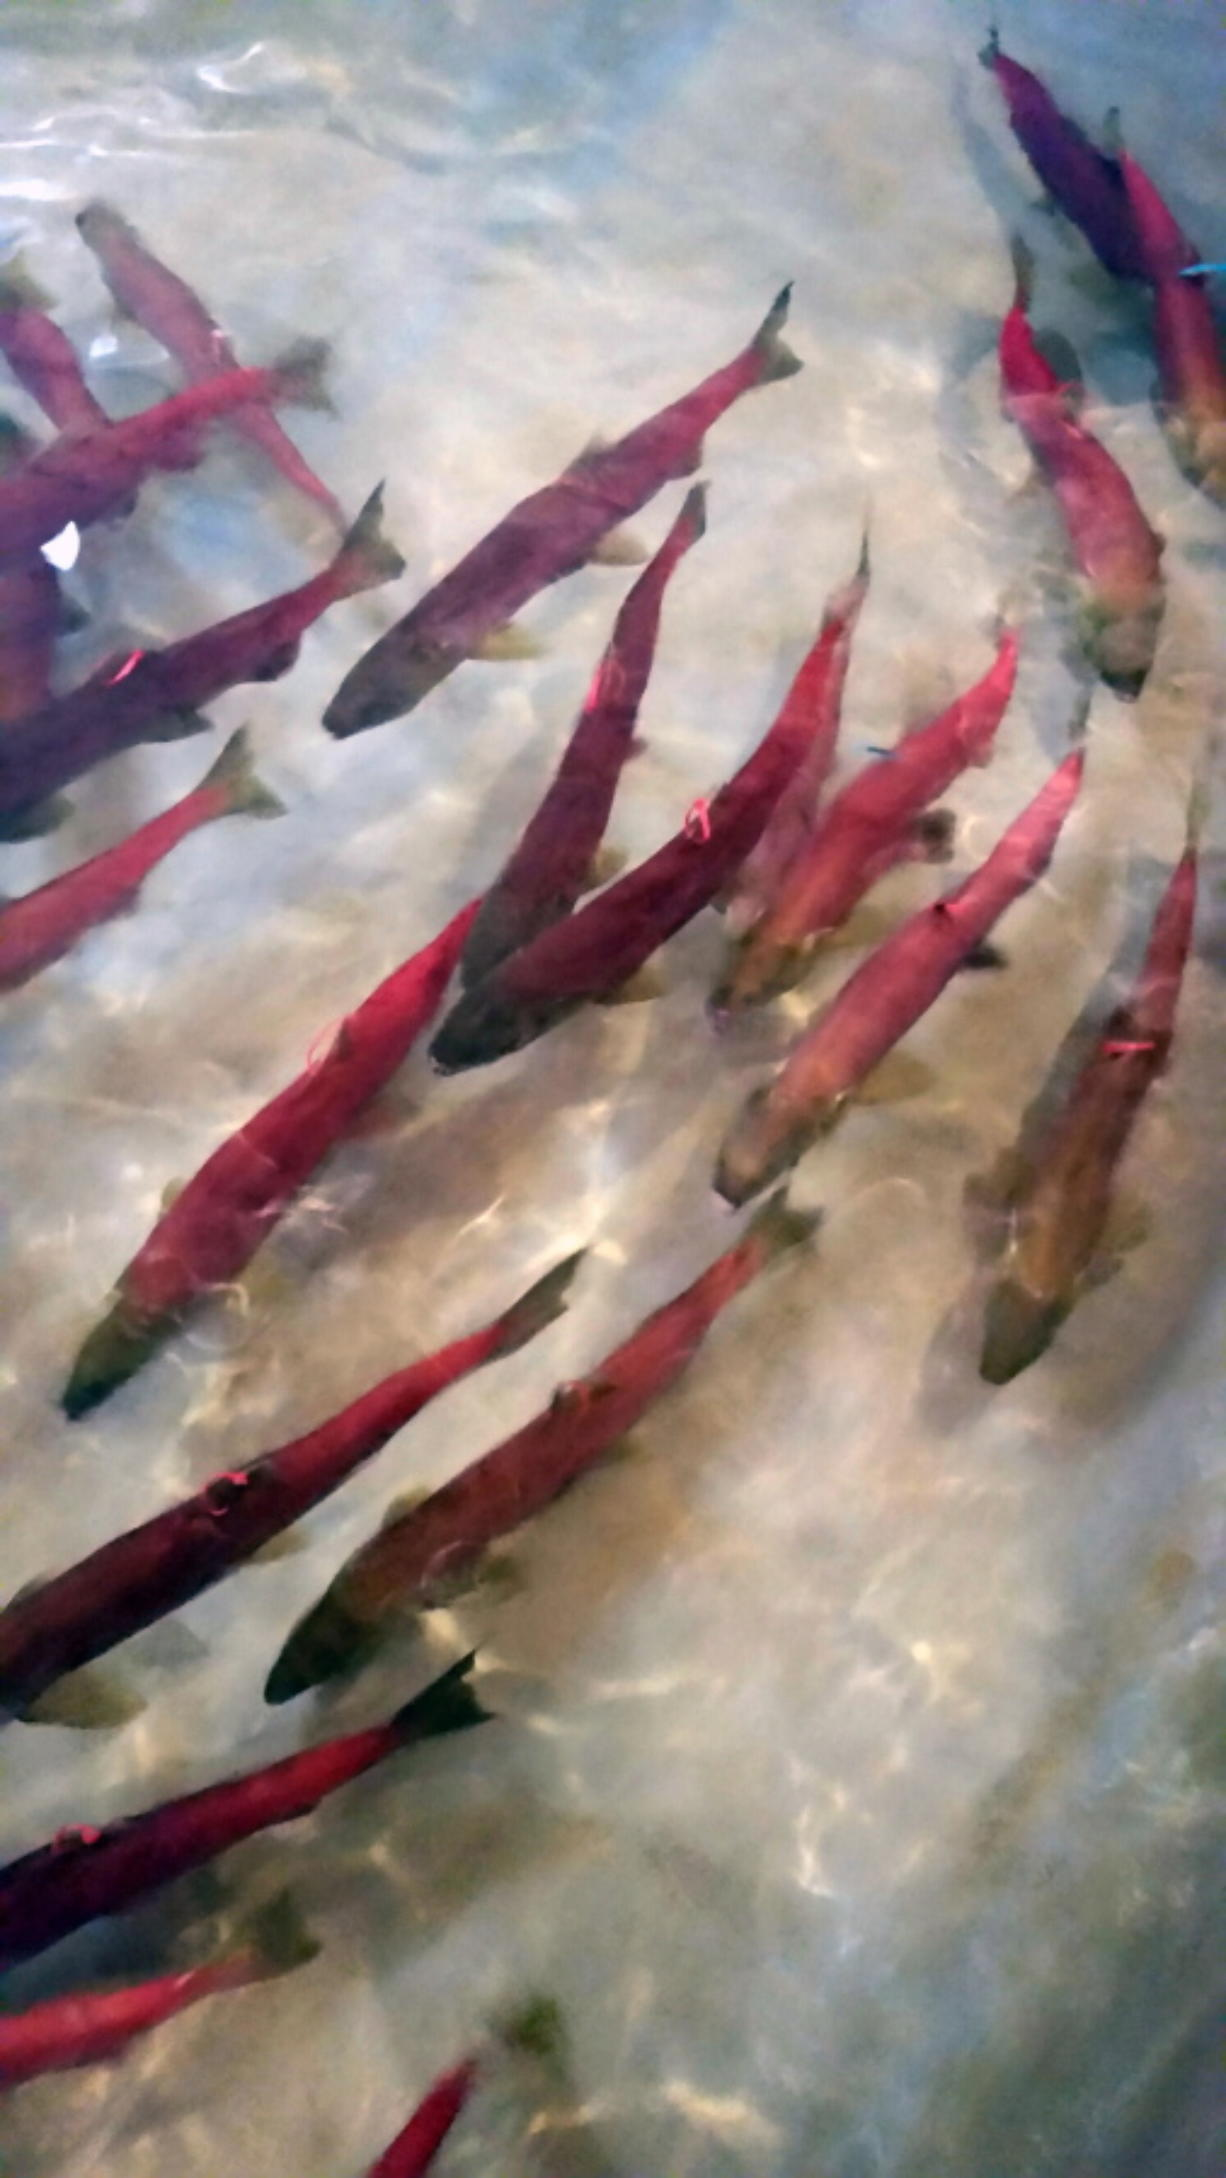 Snake River sockeye salmon that returned from the Pacific Ocean to Idaho over the summer swim in a holding tank on Sept. 26, 2017, at the Eagle Fish Hatchery in southwestern Idaho. (Dan Baker/Idaho Fish and Game files)